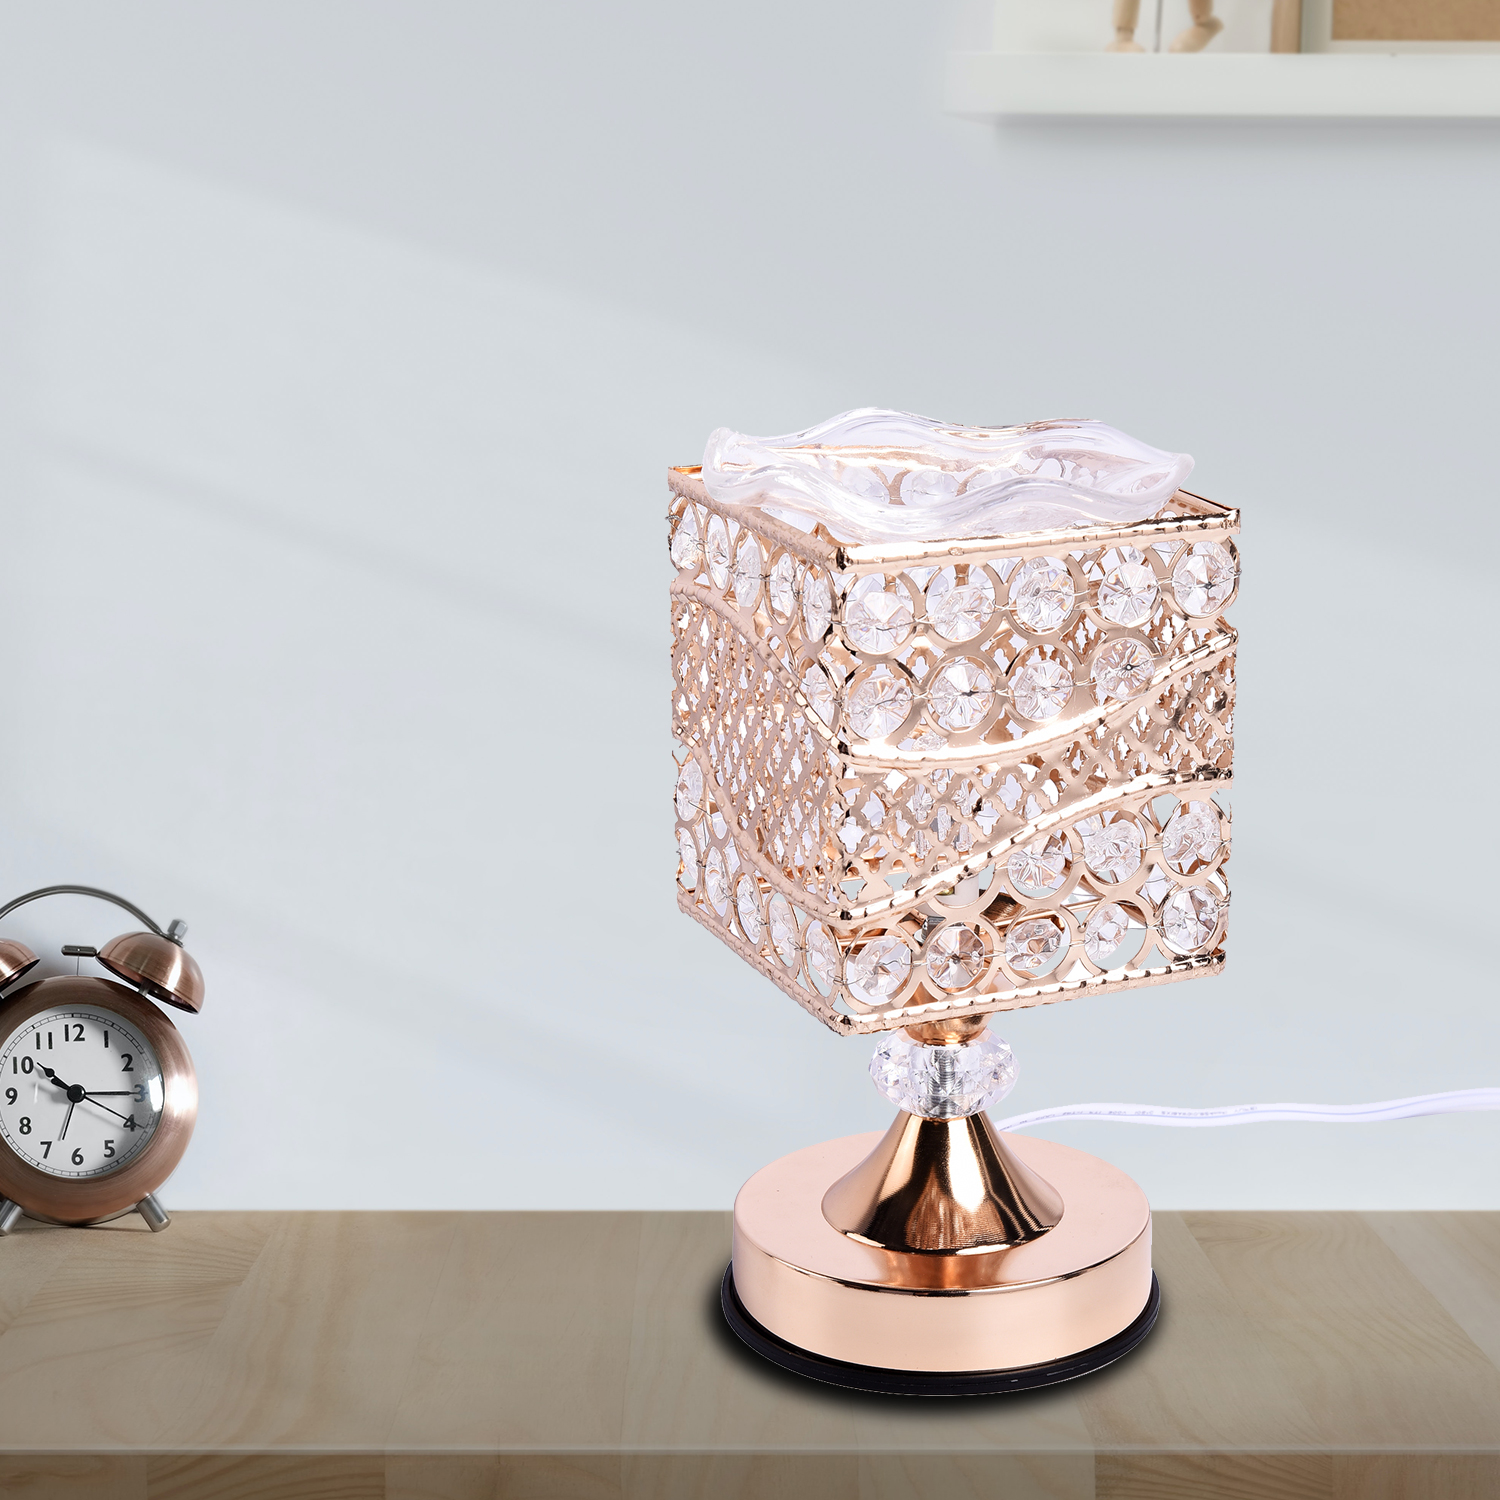 thumbnail 7 - Home Decor Gold Color Iron Design G Table Lamp with UL Plug Bulb G5 Included